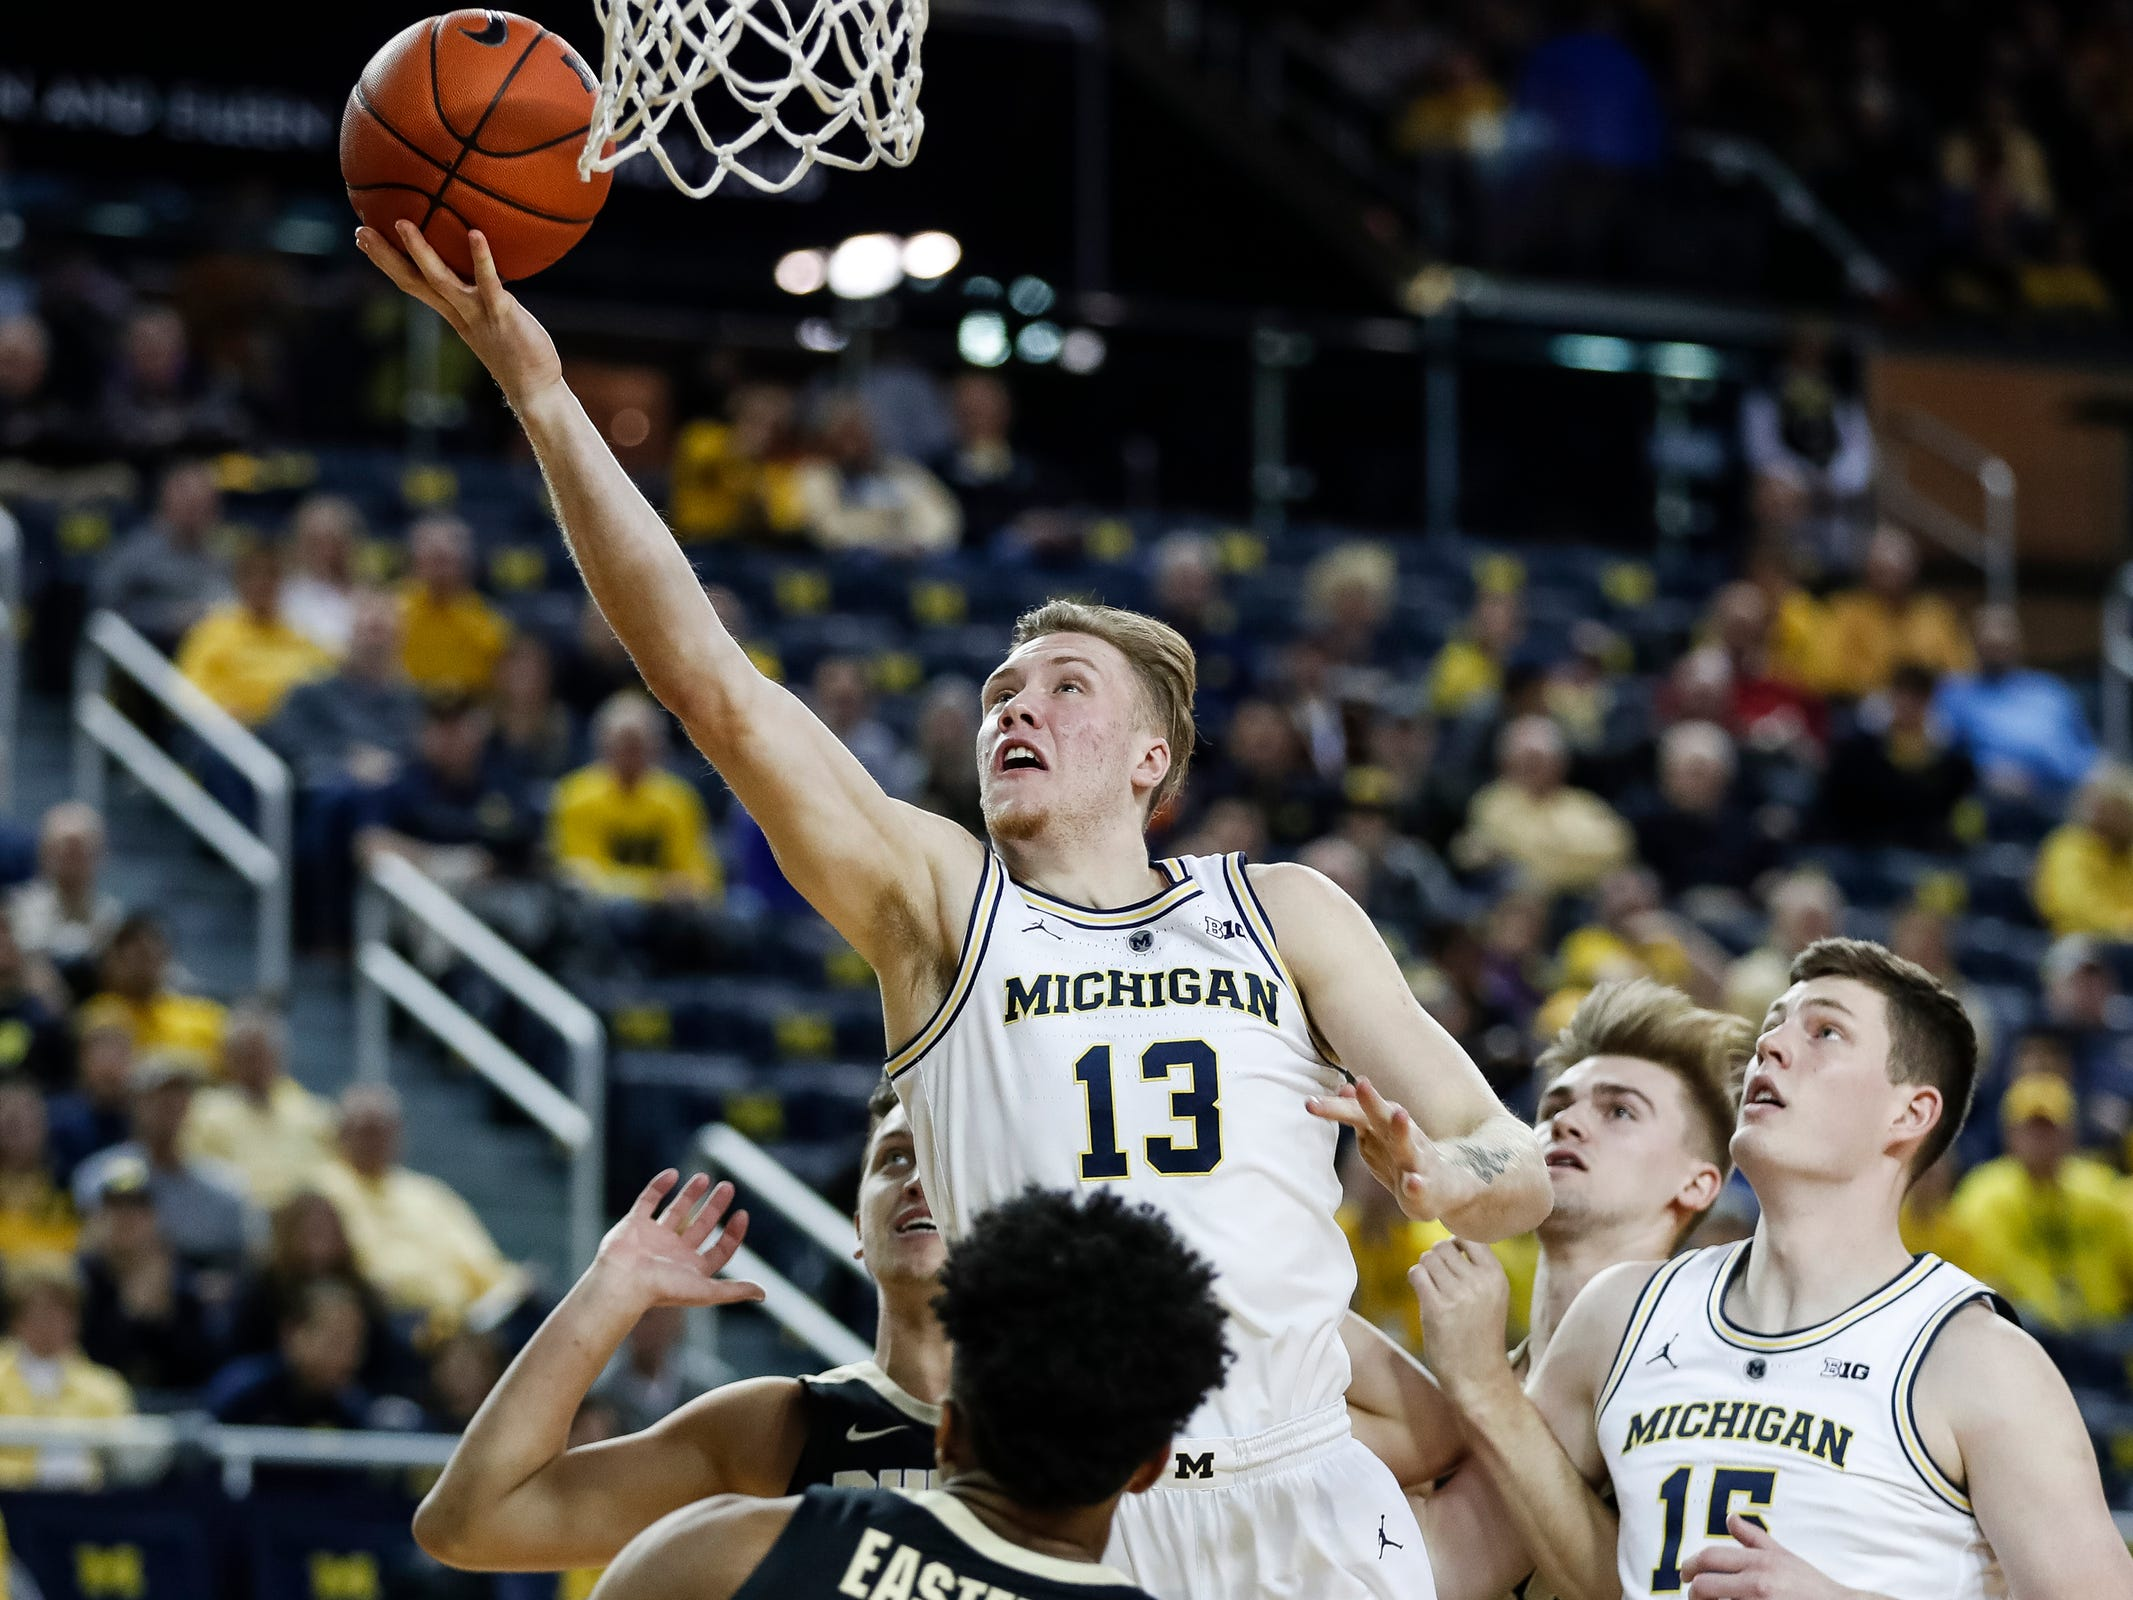 Michigan forward Ignas Brazdeikis (13) makes a layup during the first half against Purdue at Crisler Center on Saturday, Dec. 1, 2018.